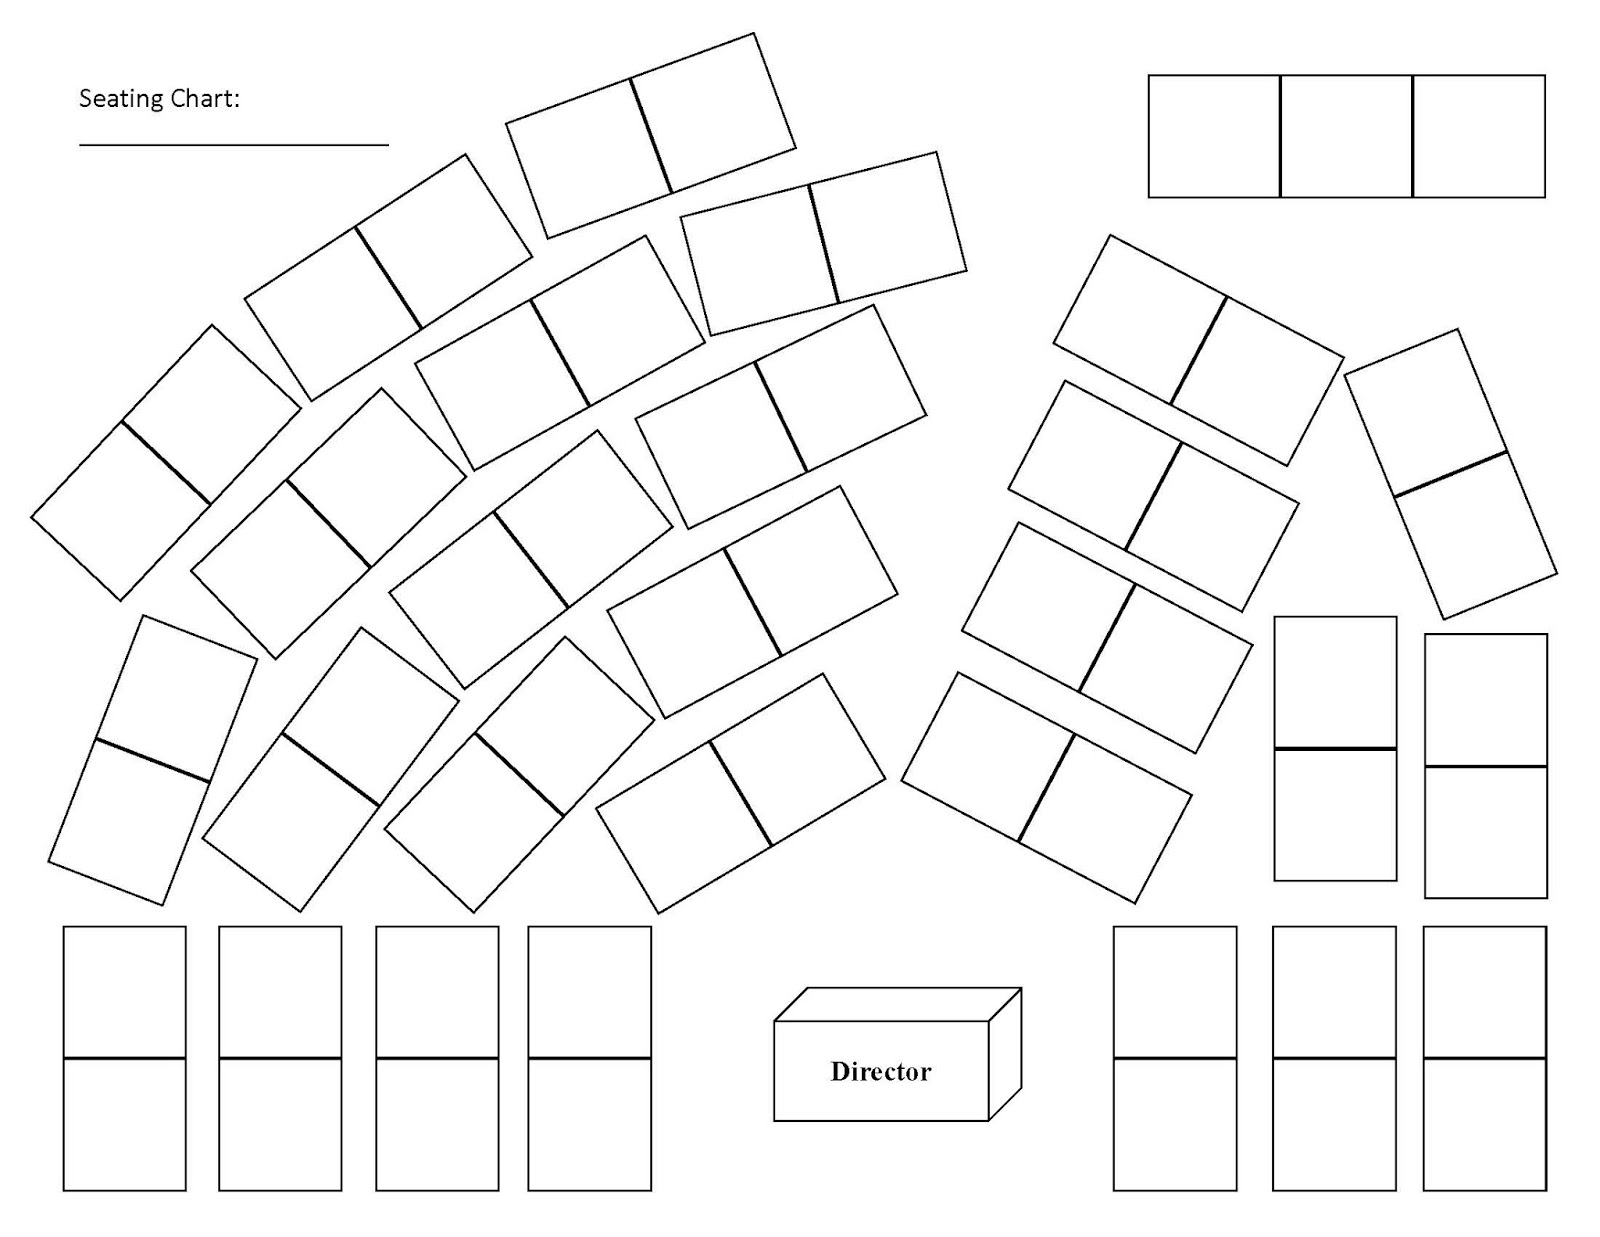 Orchestra seating chart template seating charts orchestra chart email this blogthis share to twitter share to facebook share to maxwellsz